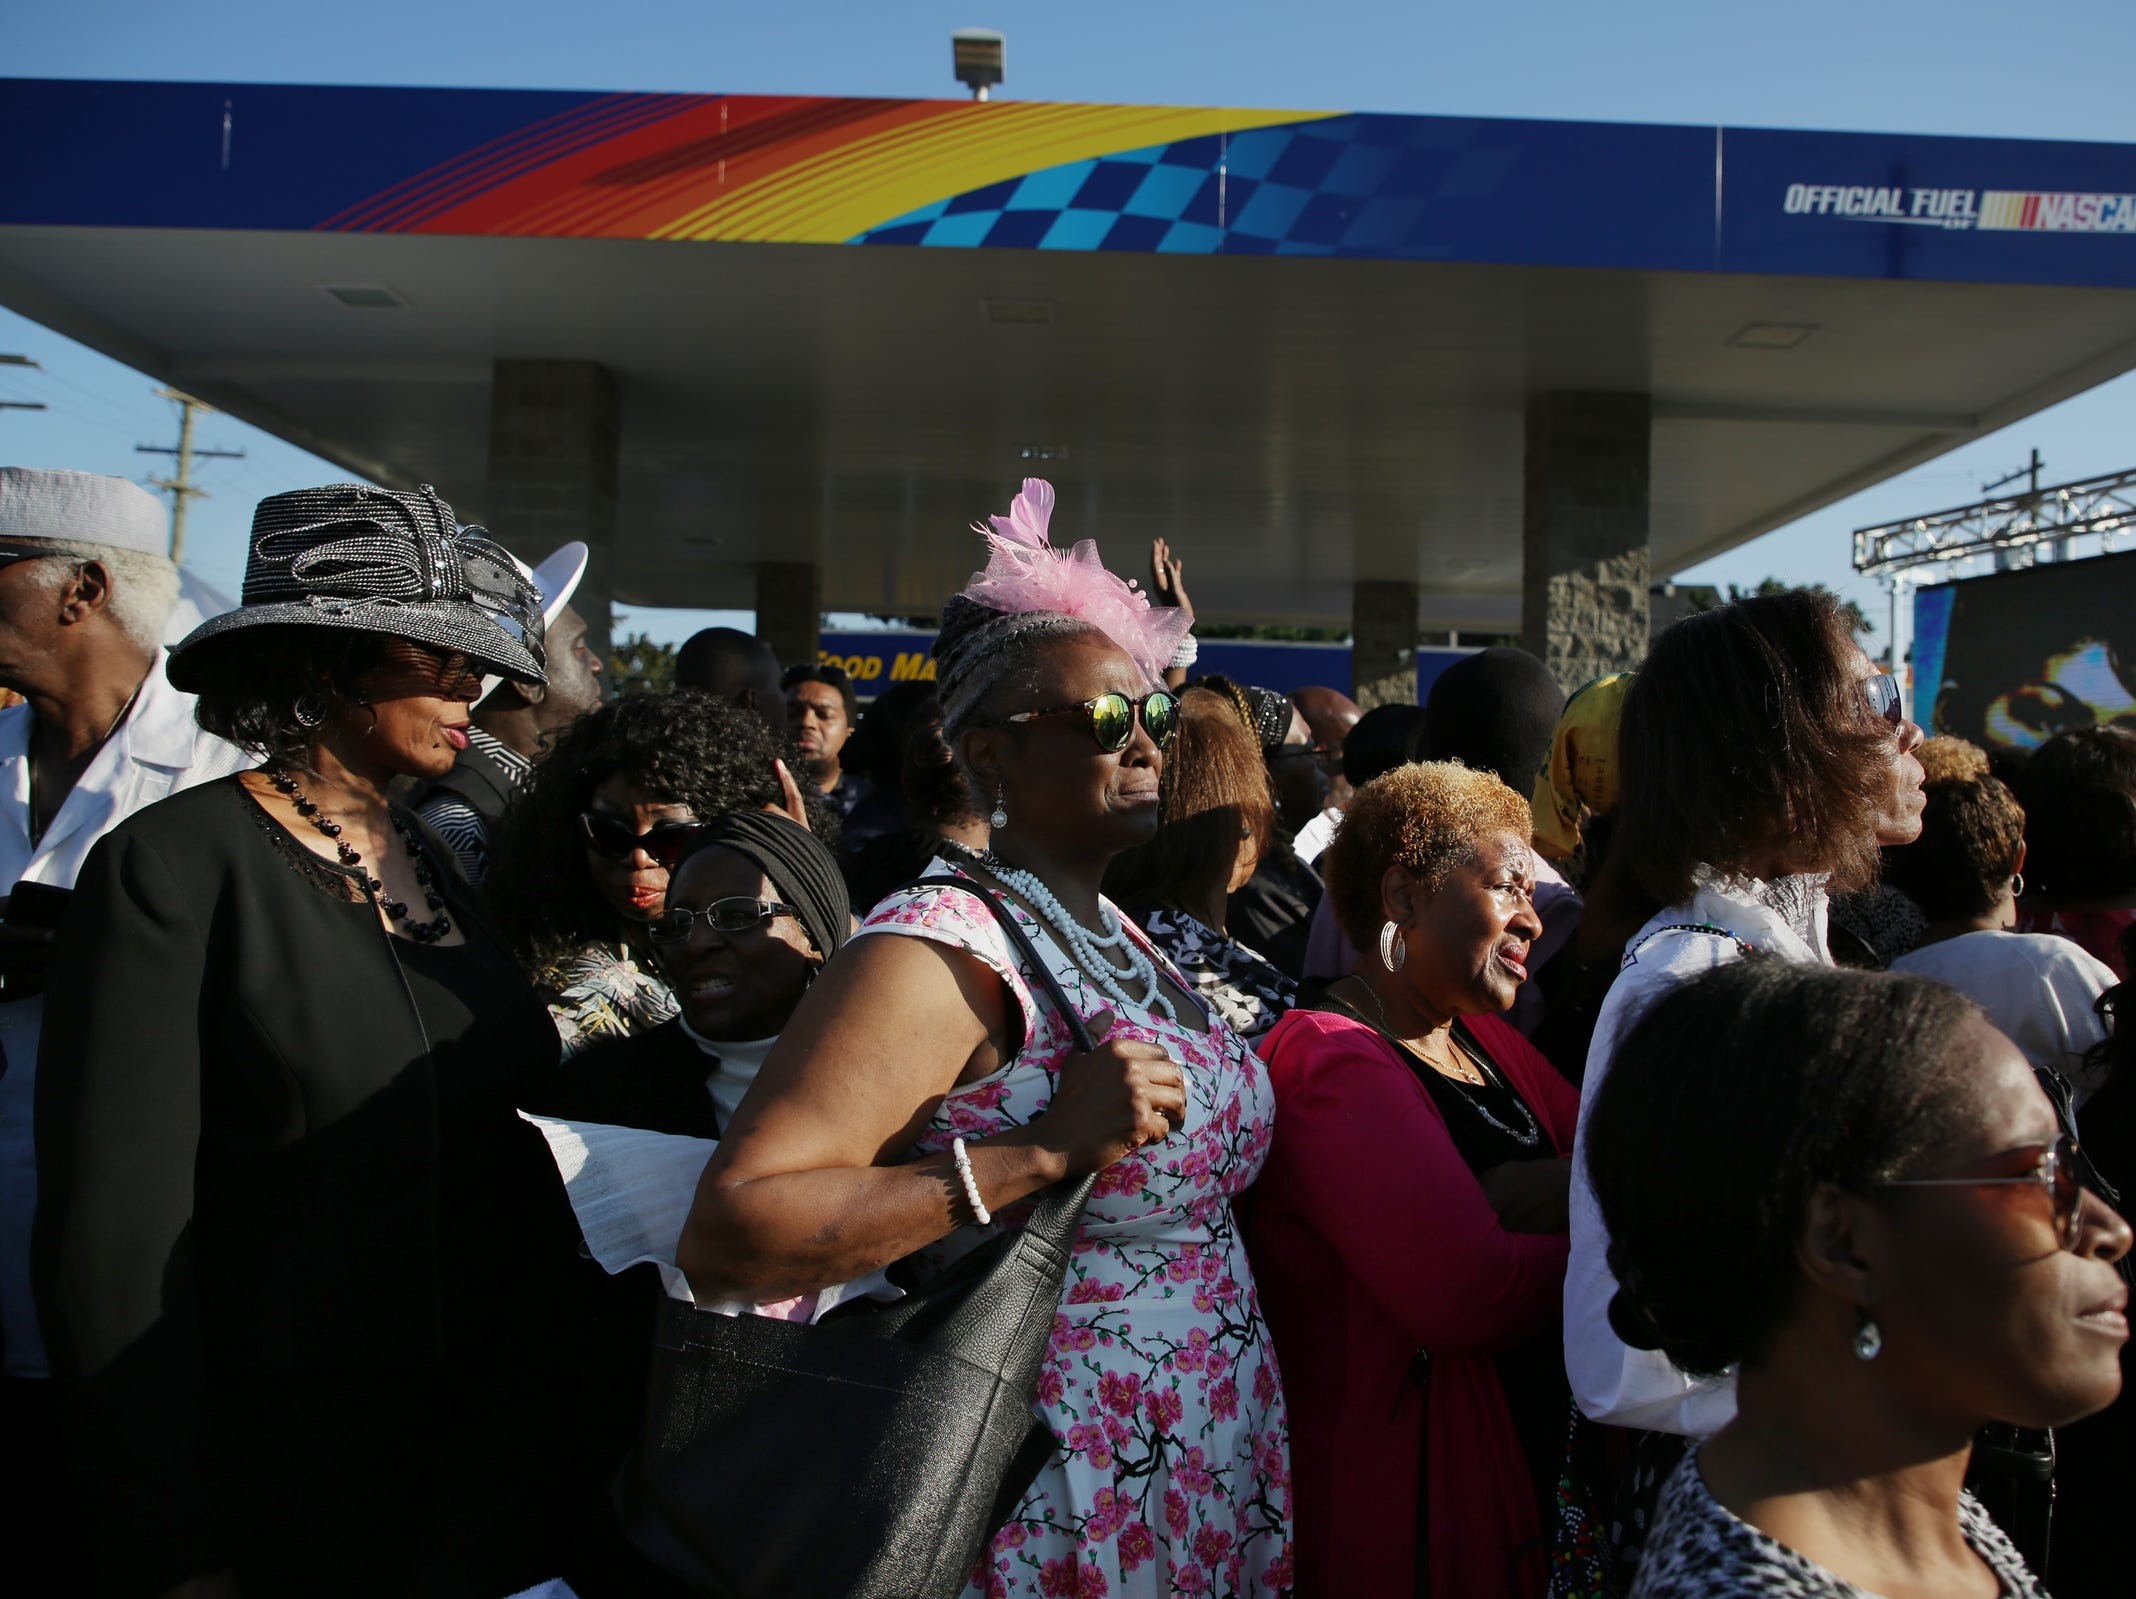 People wait in line for a chance to attend the funeral of Aretha Franklin at Greater Grace Temple on Friday, August 31, 2018.